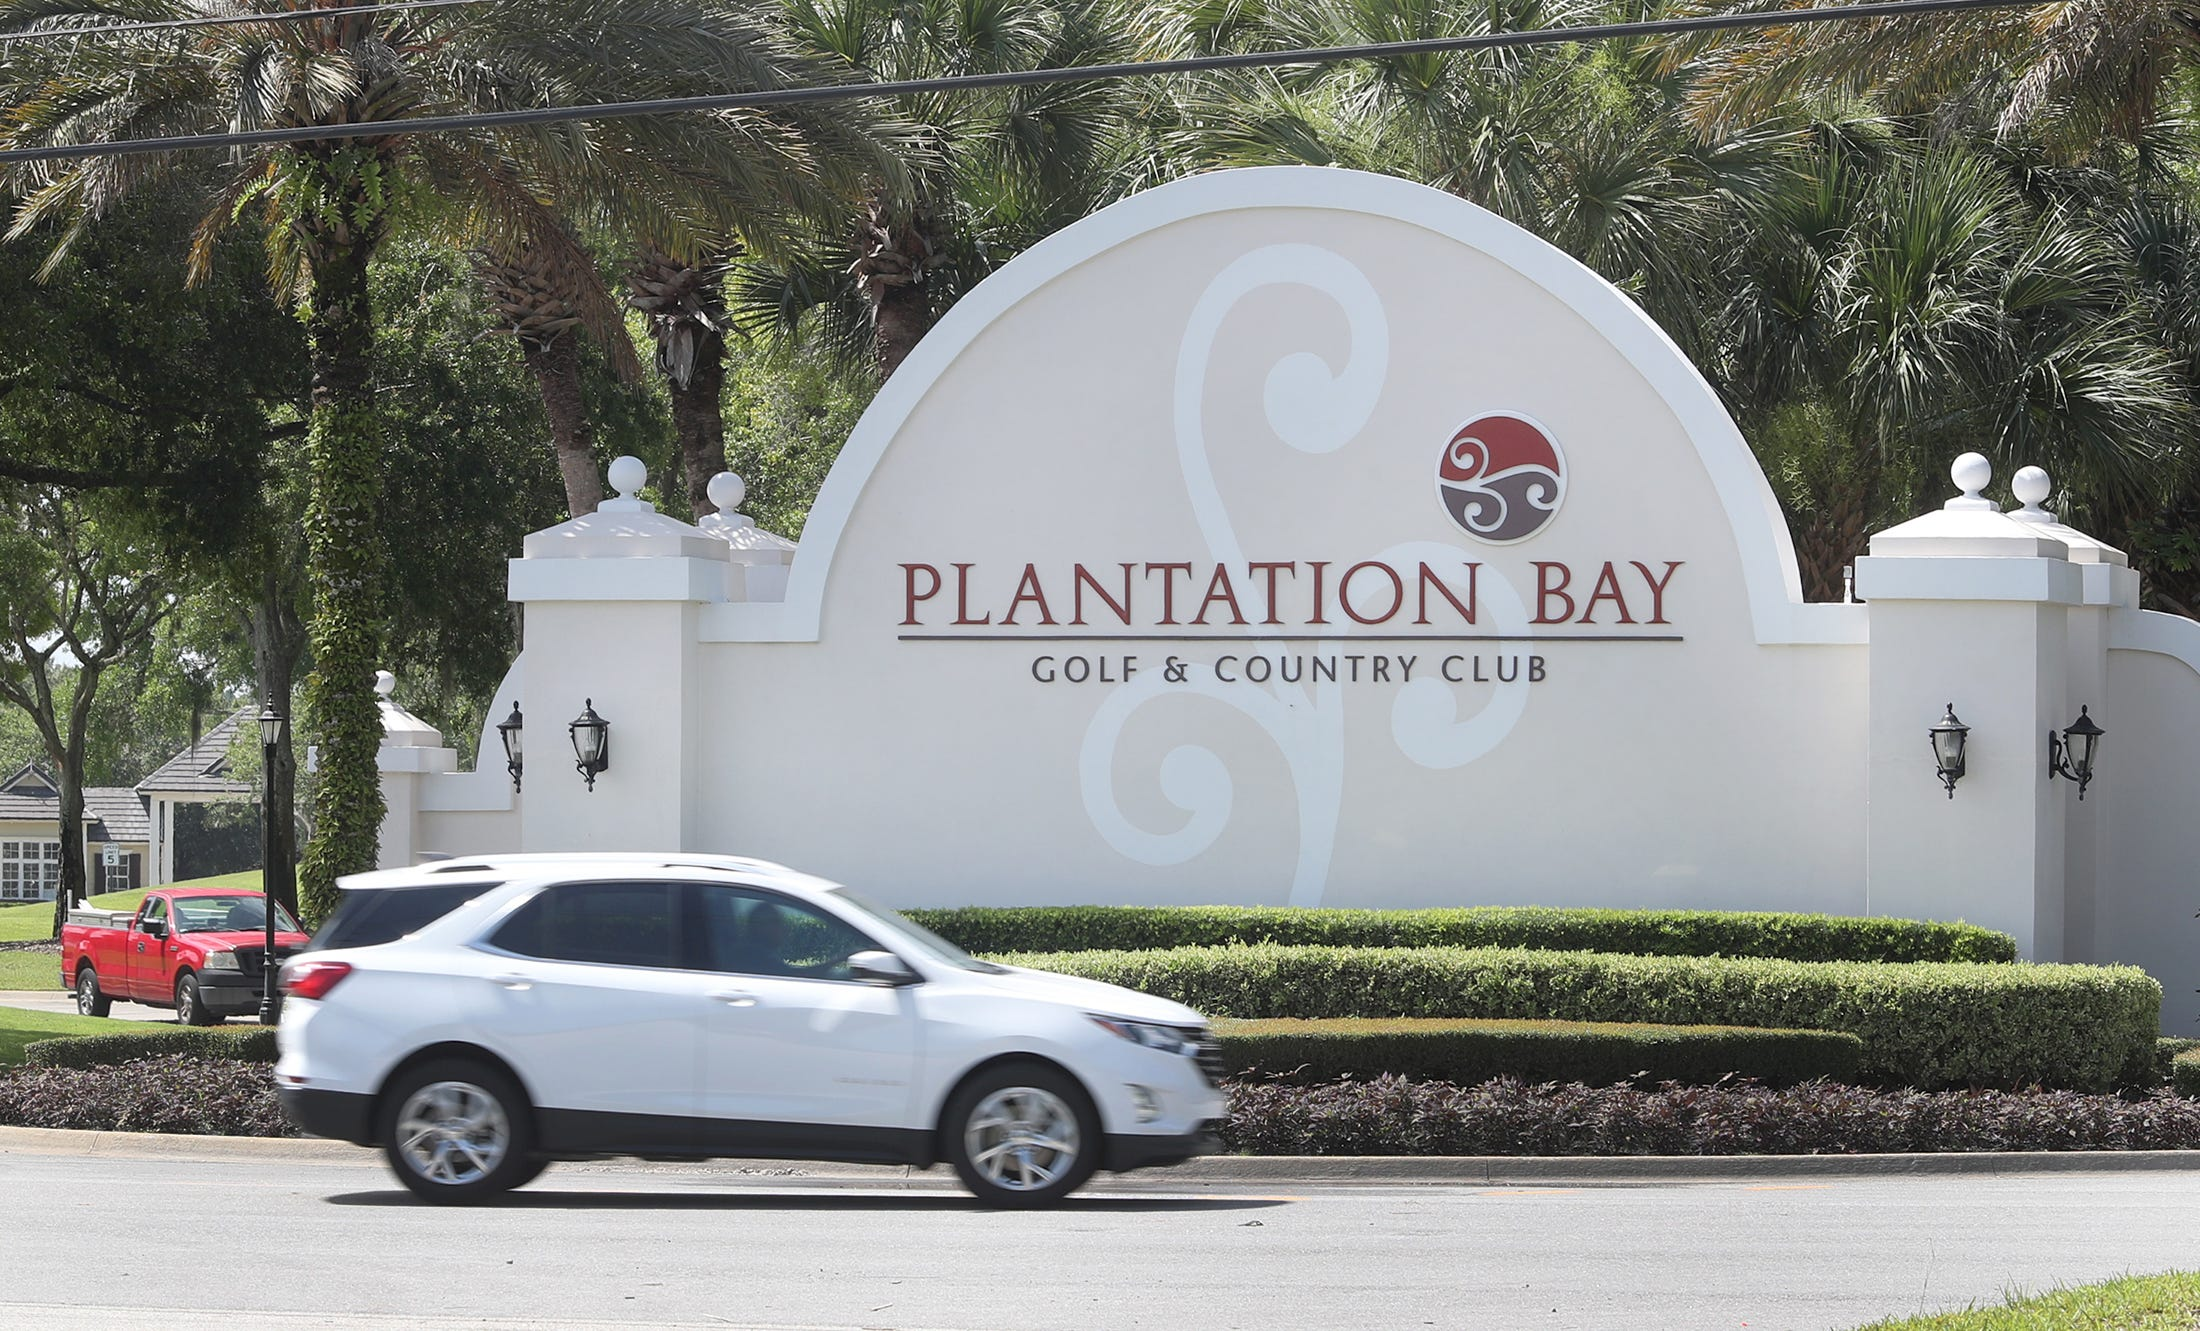 Real-estate developers refuse to change communities' plantation names